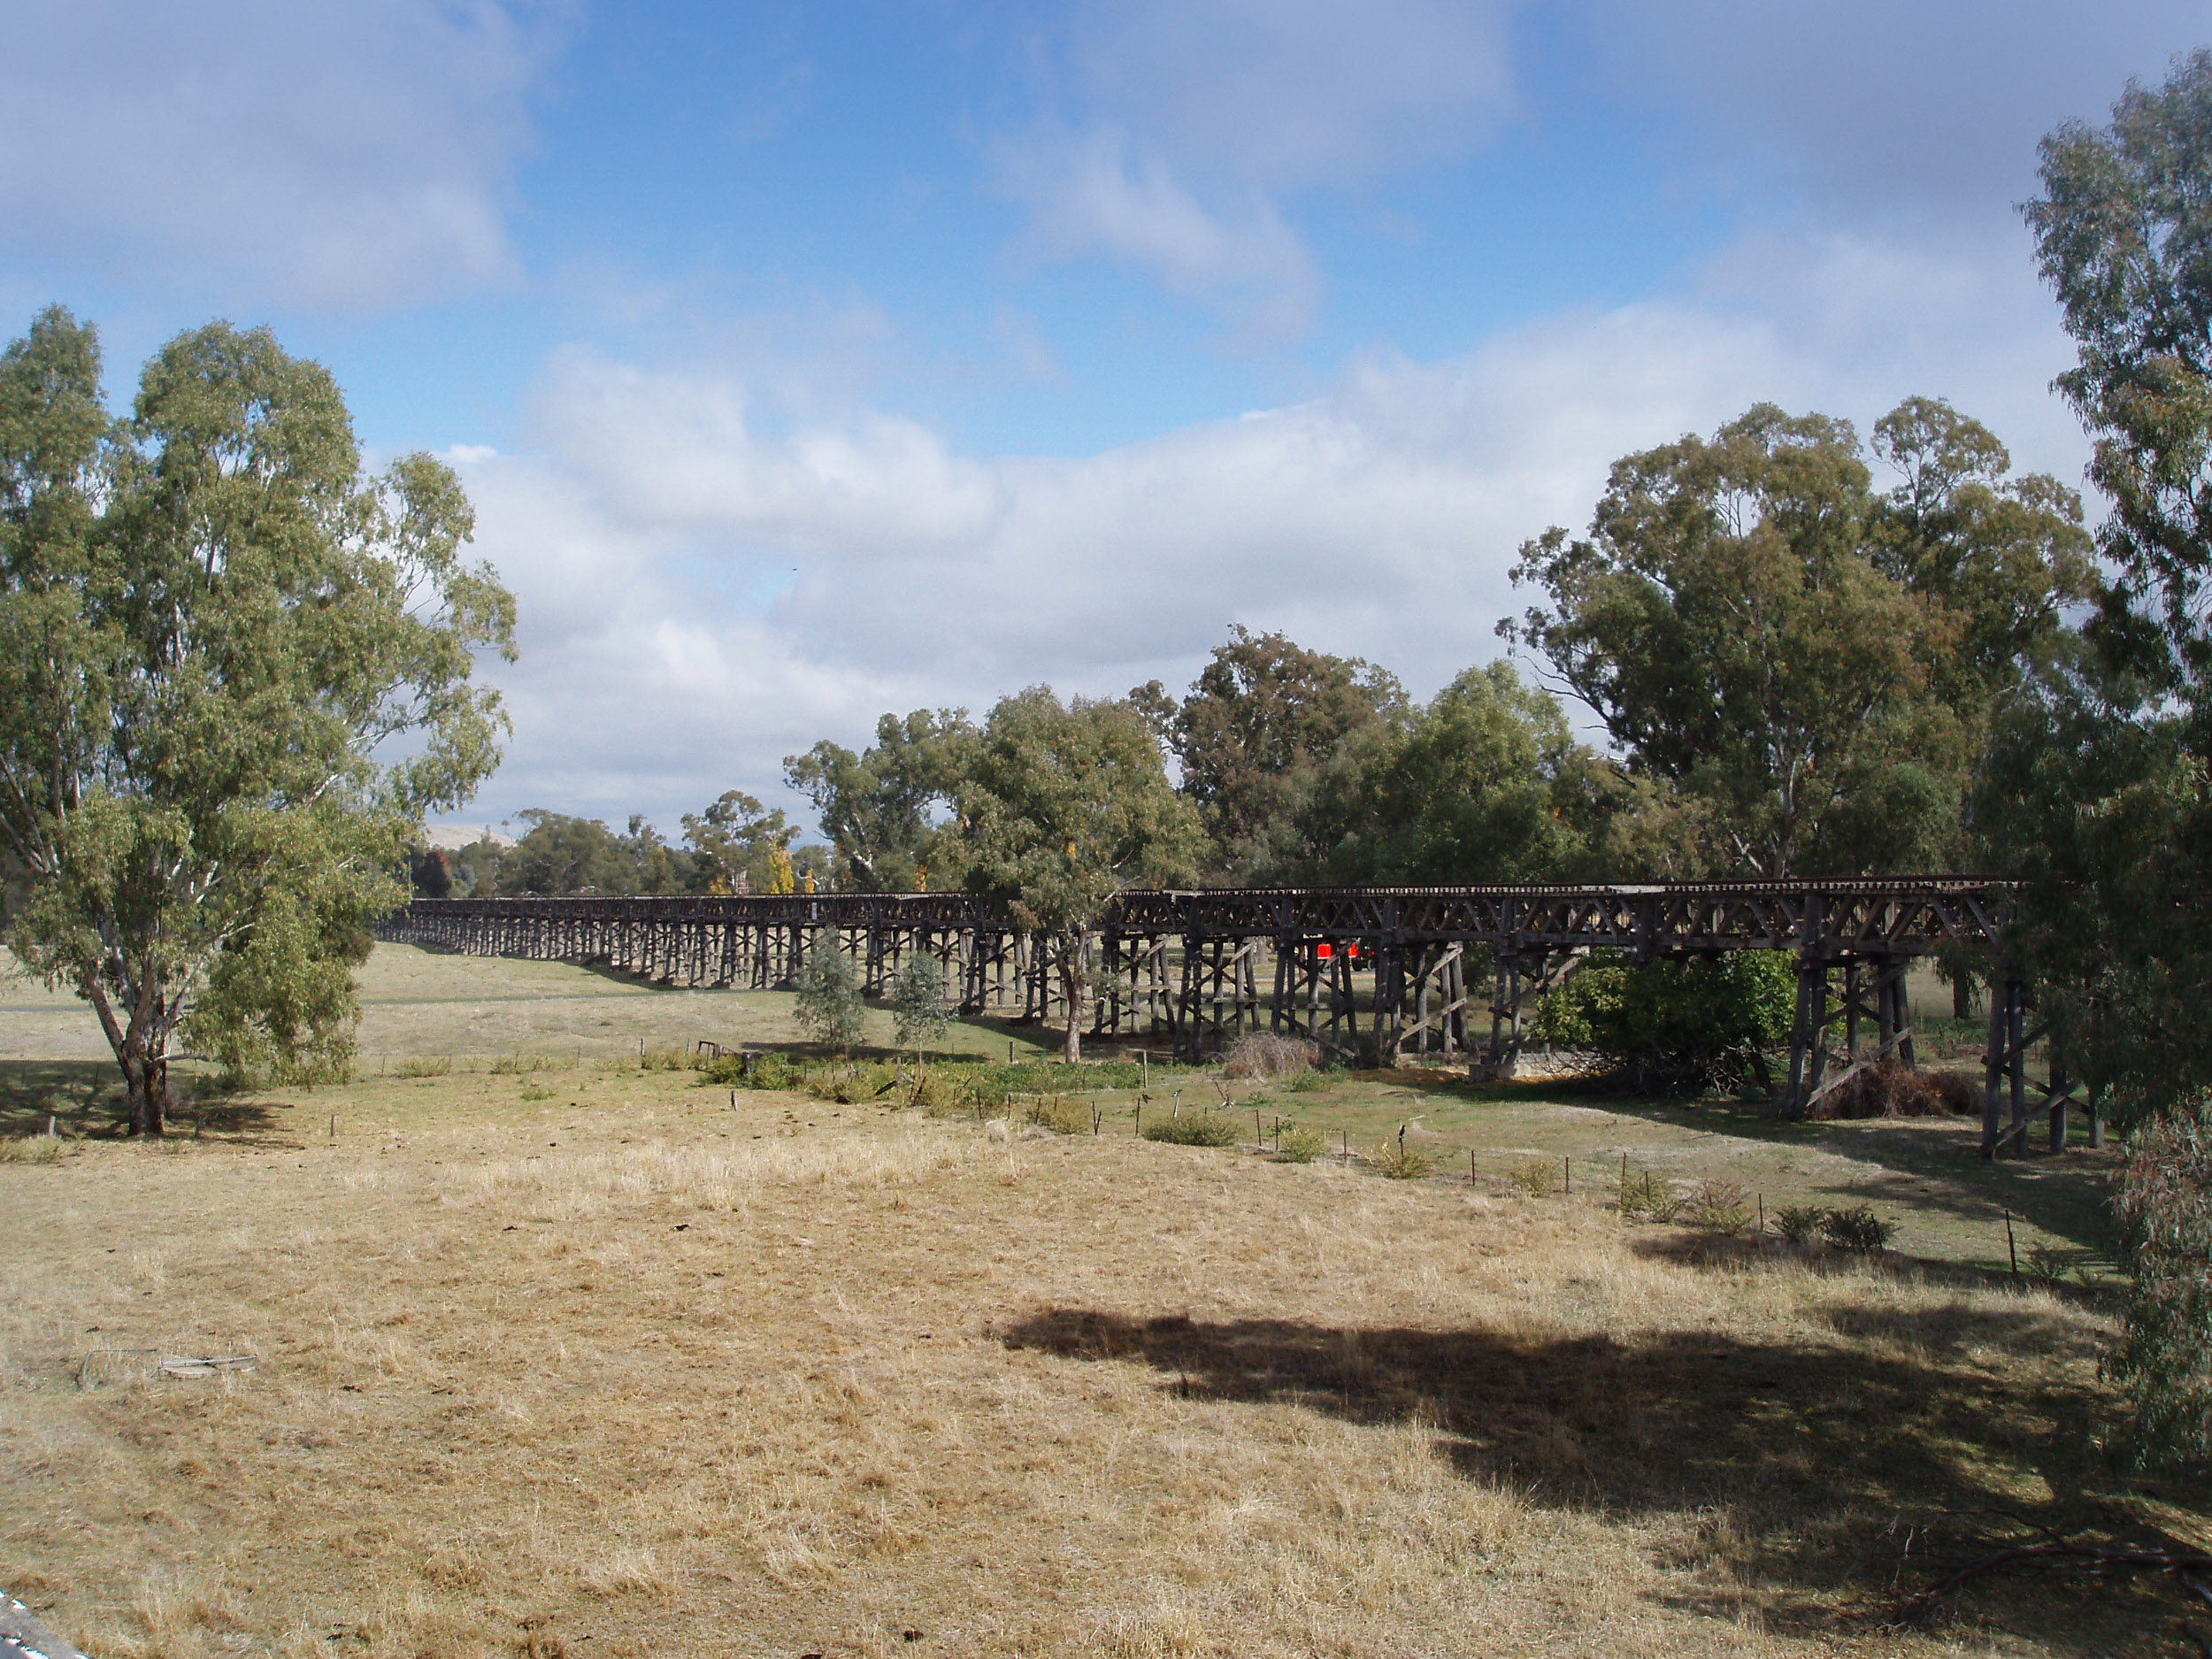 Gundagai Australia  city photo : Photo of old railway viaduct, gundagai | Free australian stock images